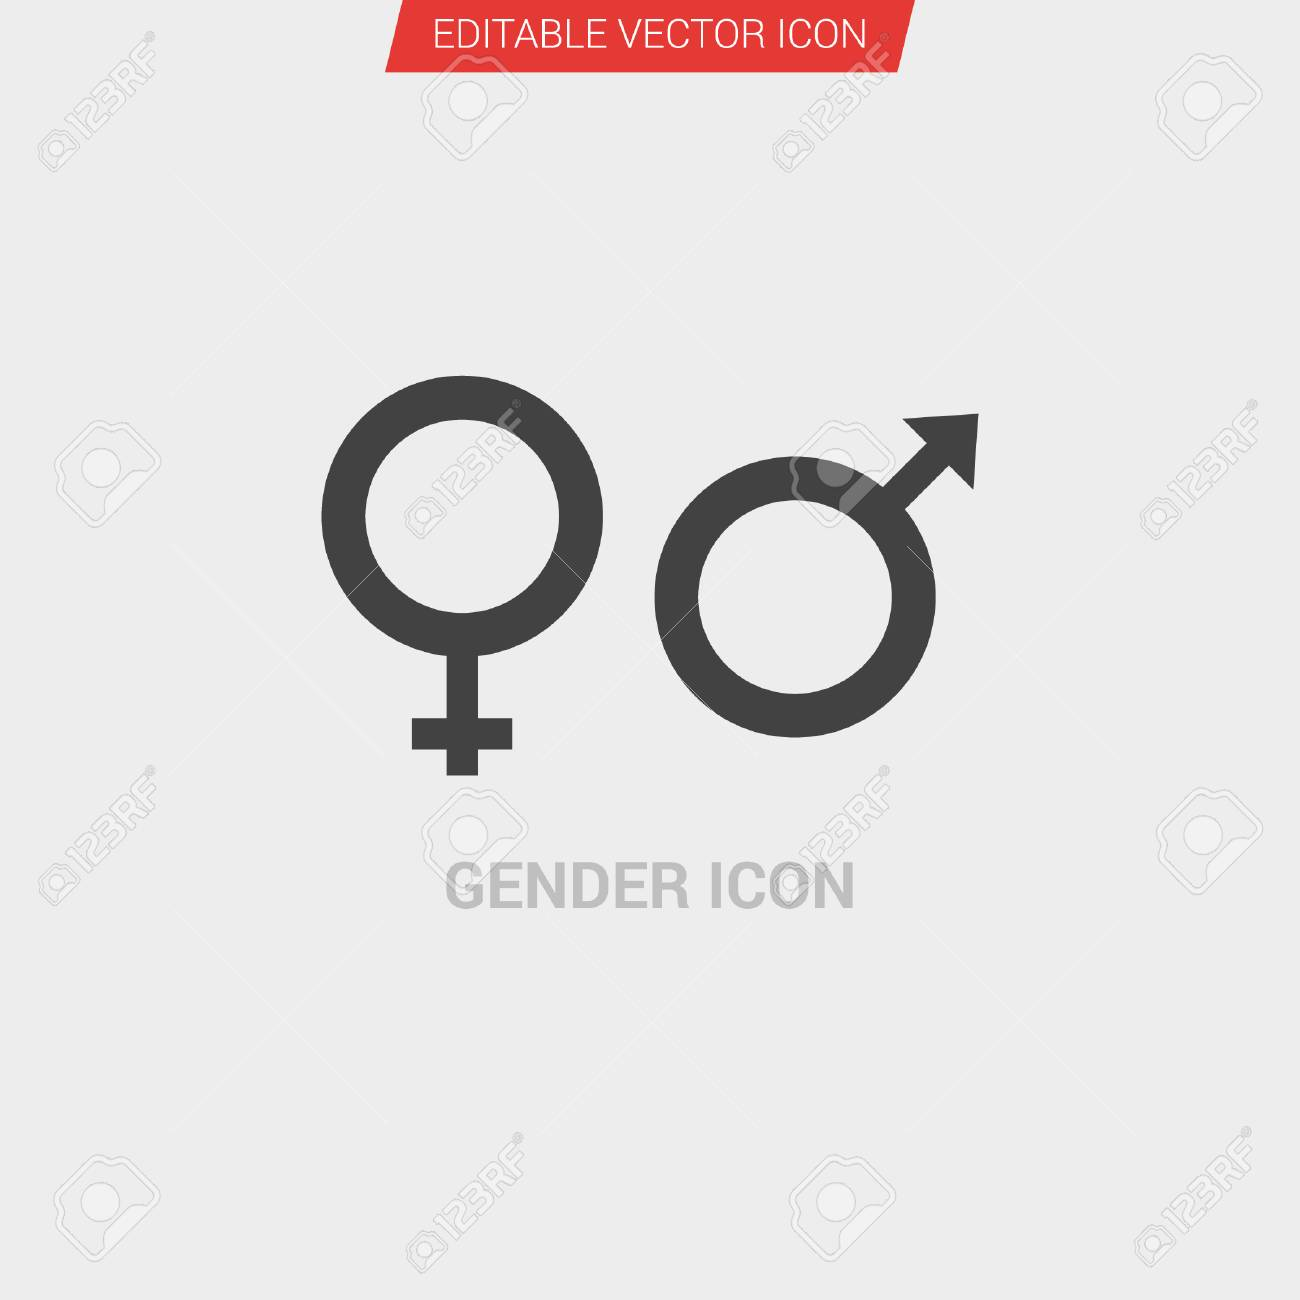 dd3774efe4ba Gender icon dark grey new trendy flat style vector symbol Stock Vector -  99879832